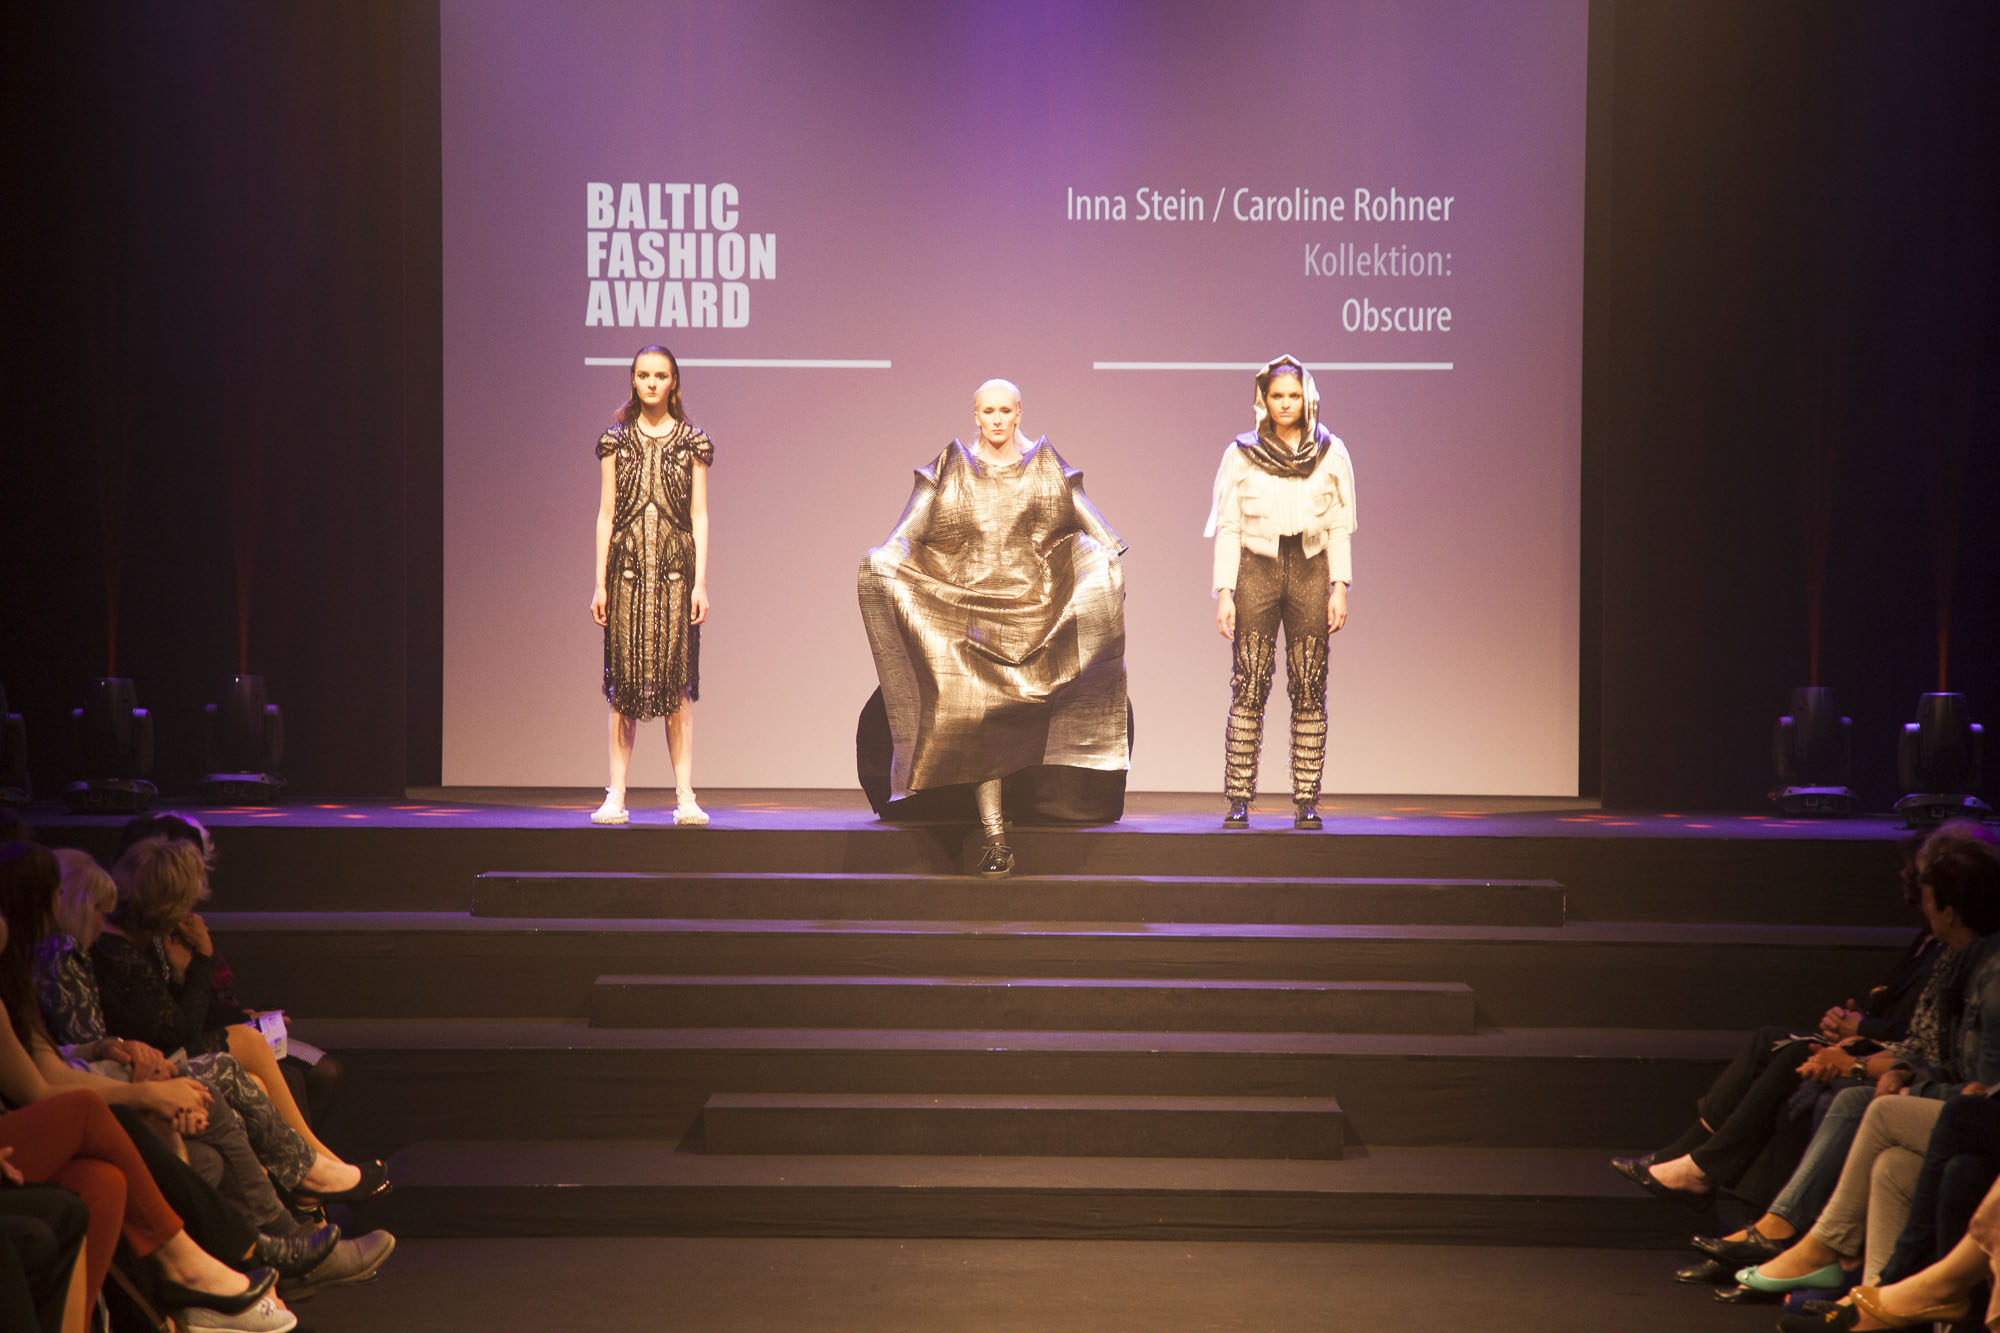 baltic fashion award